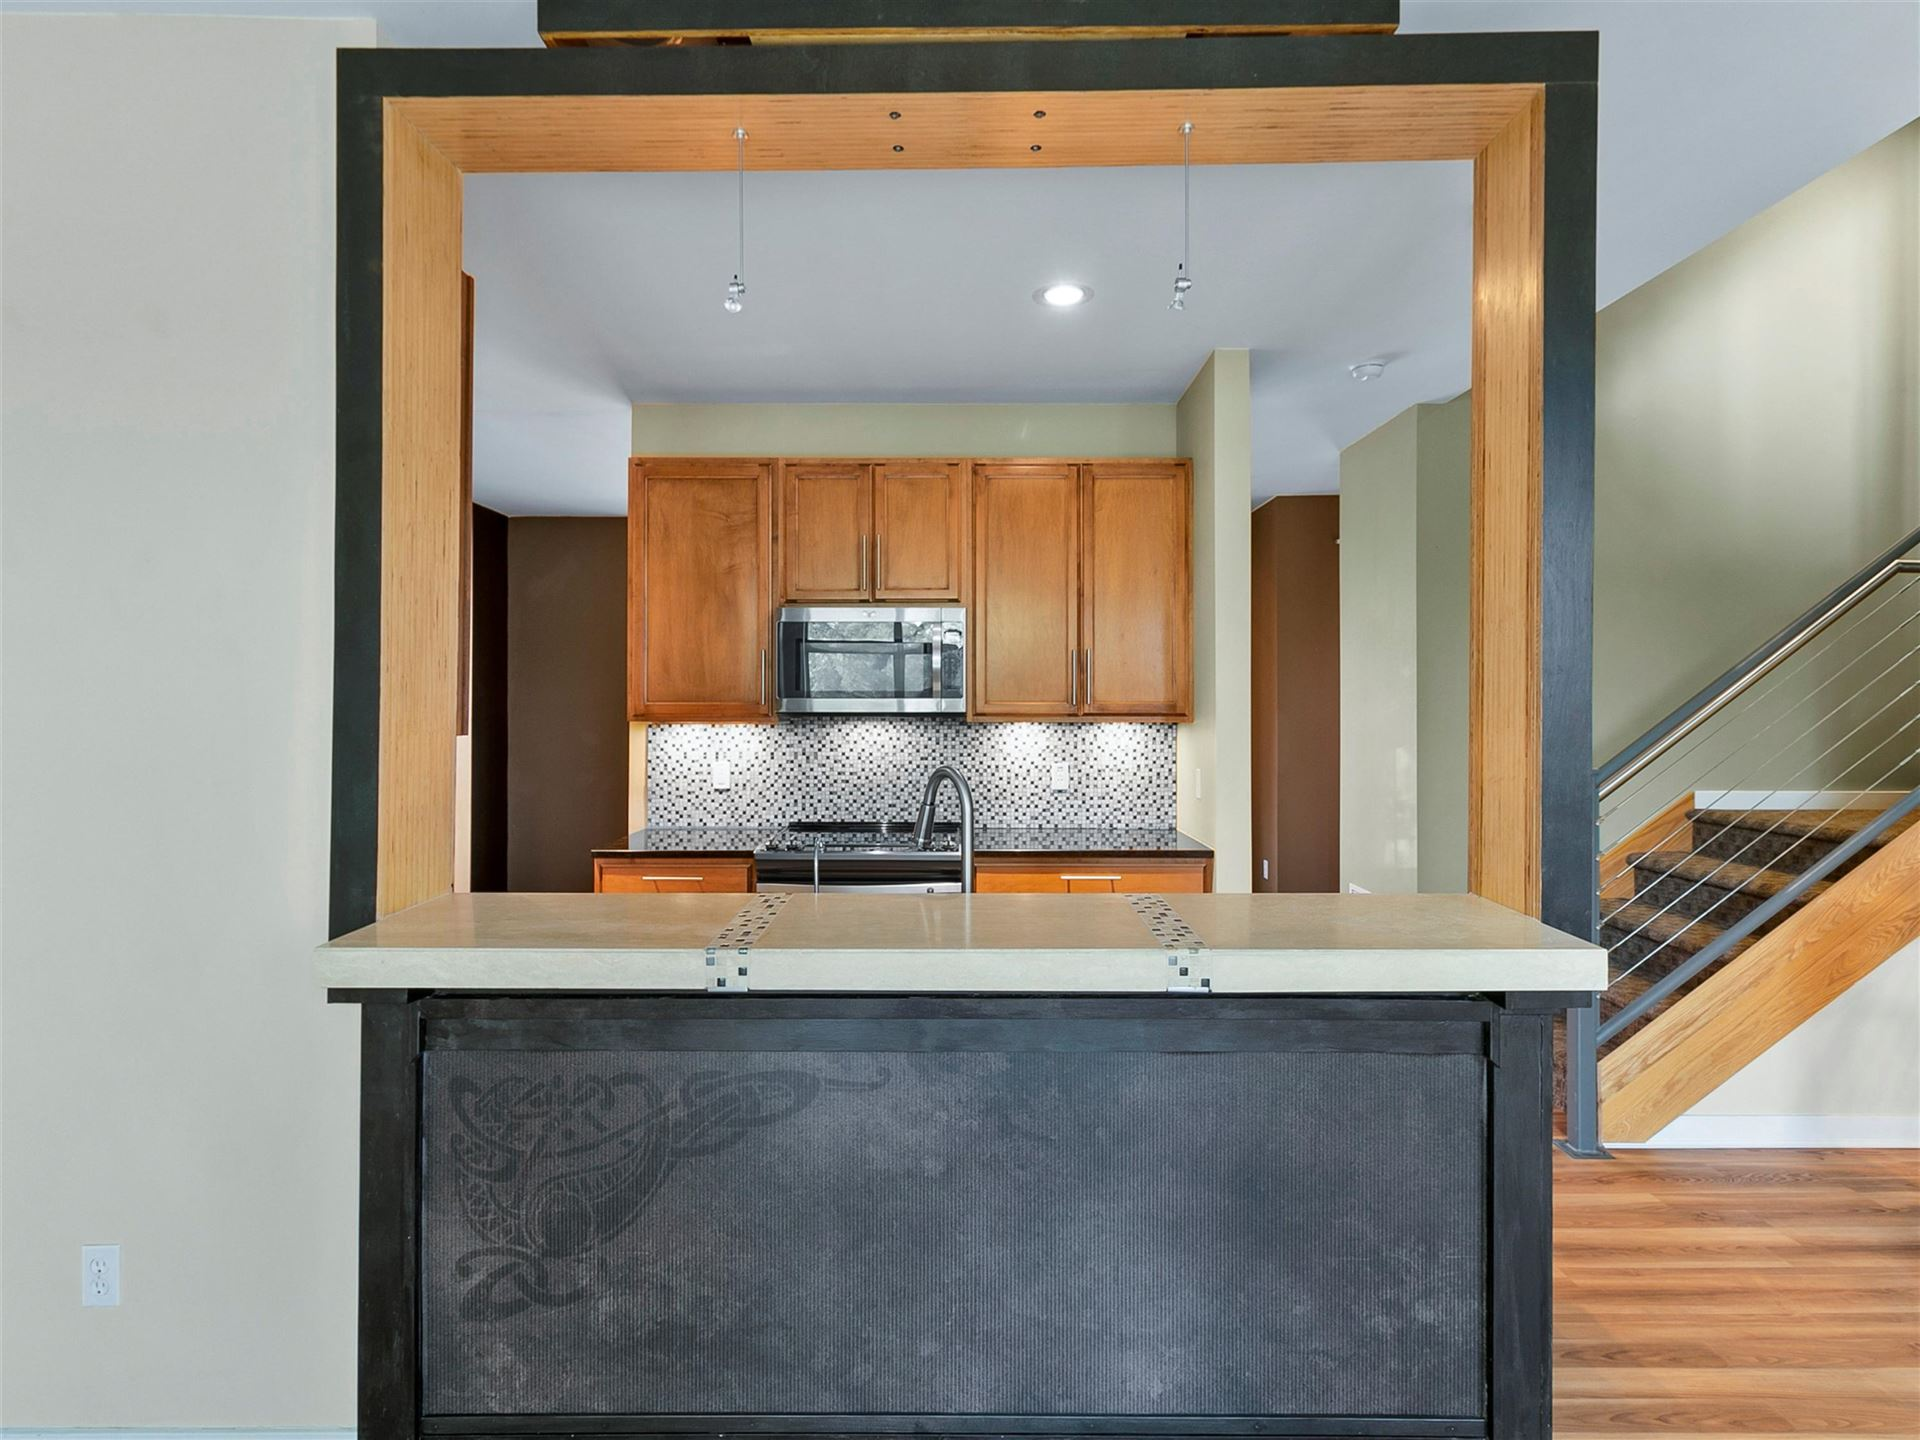 323 Mill Reserve Dr, Waukesha, WI 53188 - #: 1713208